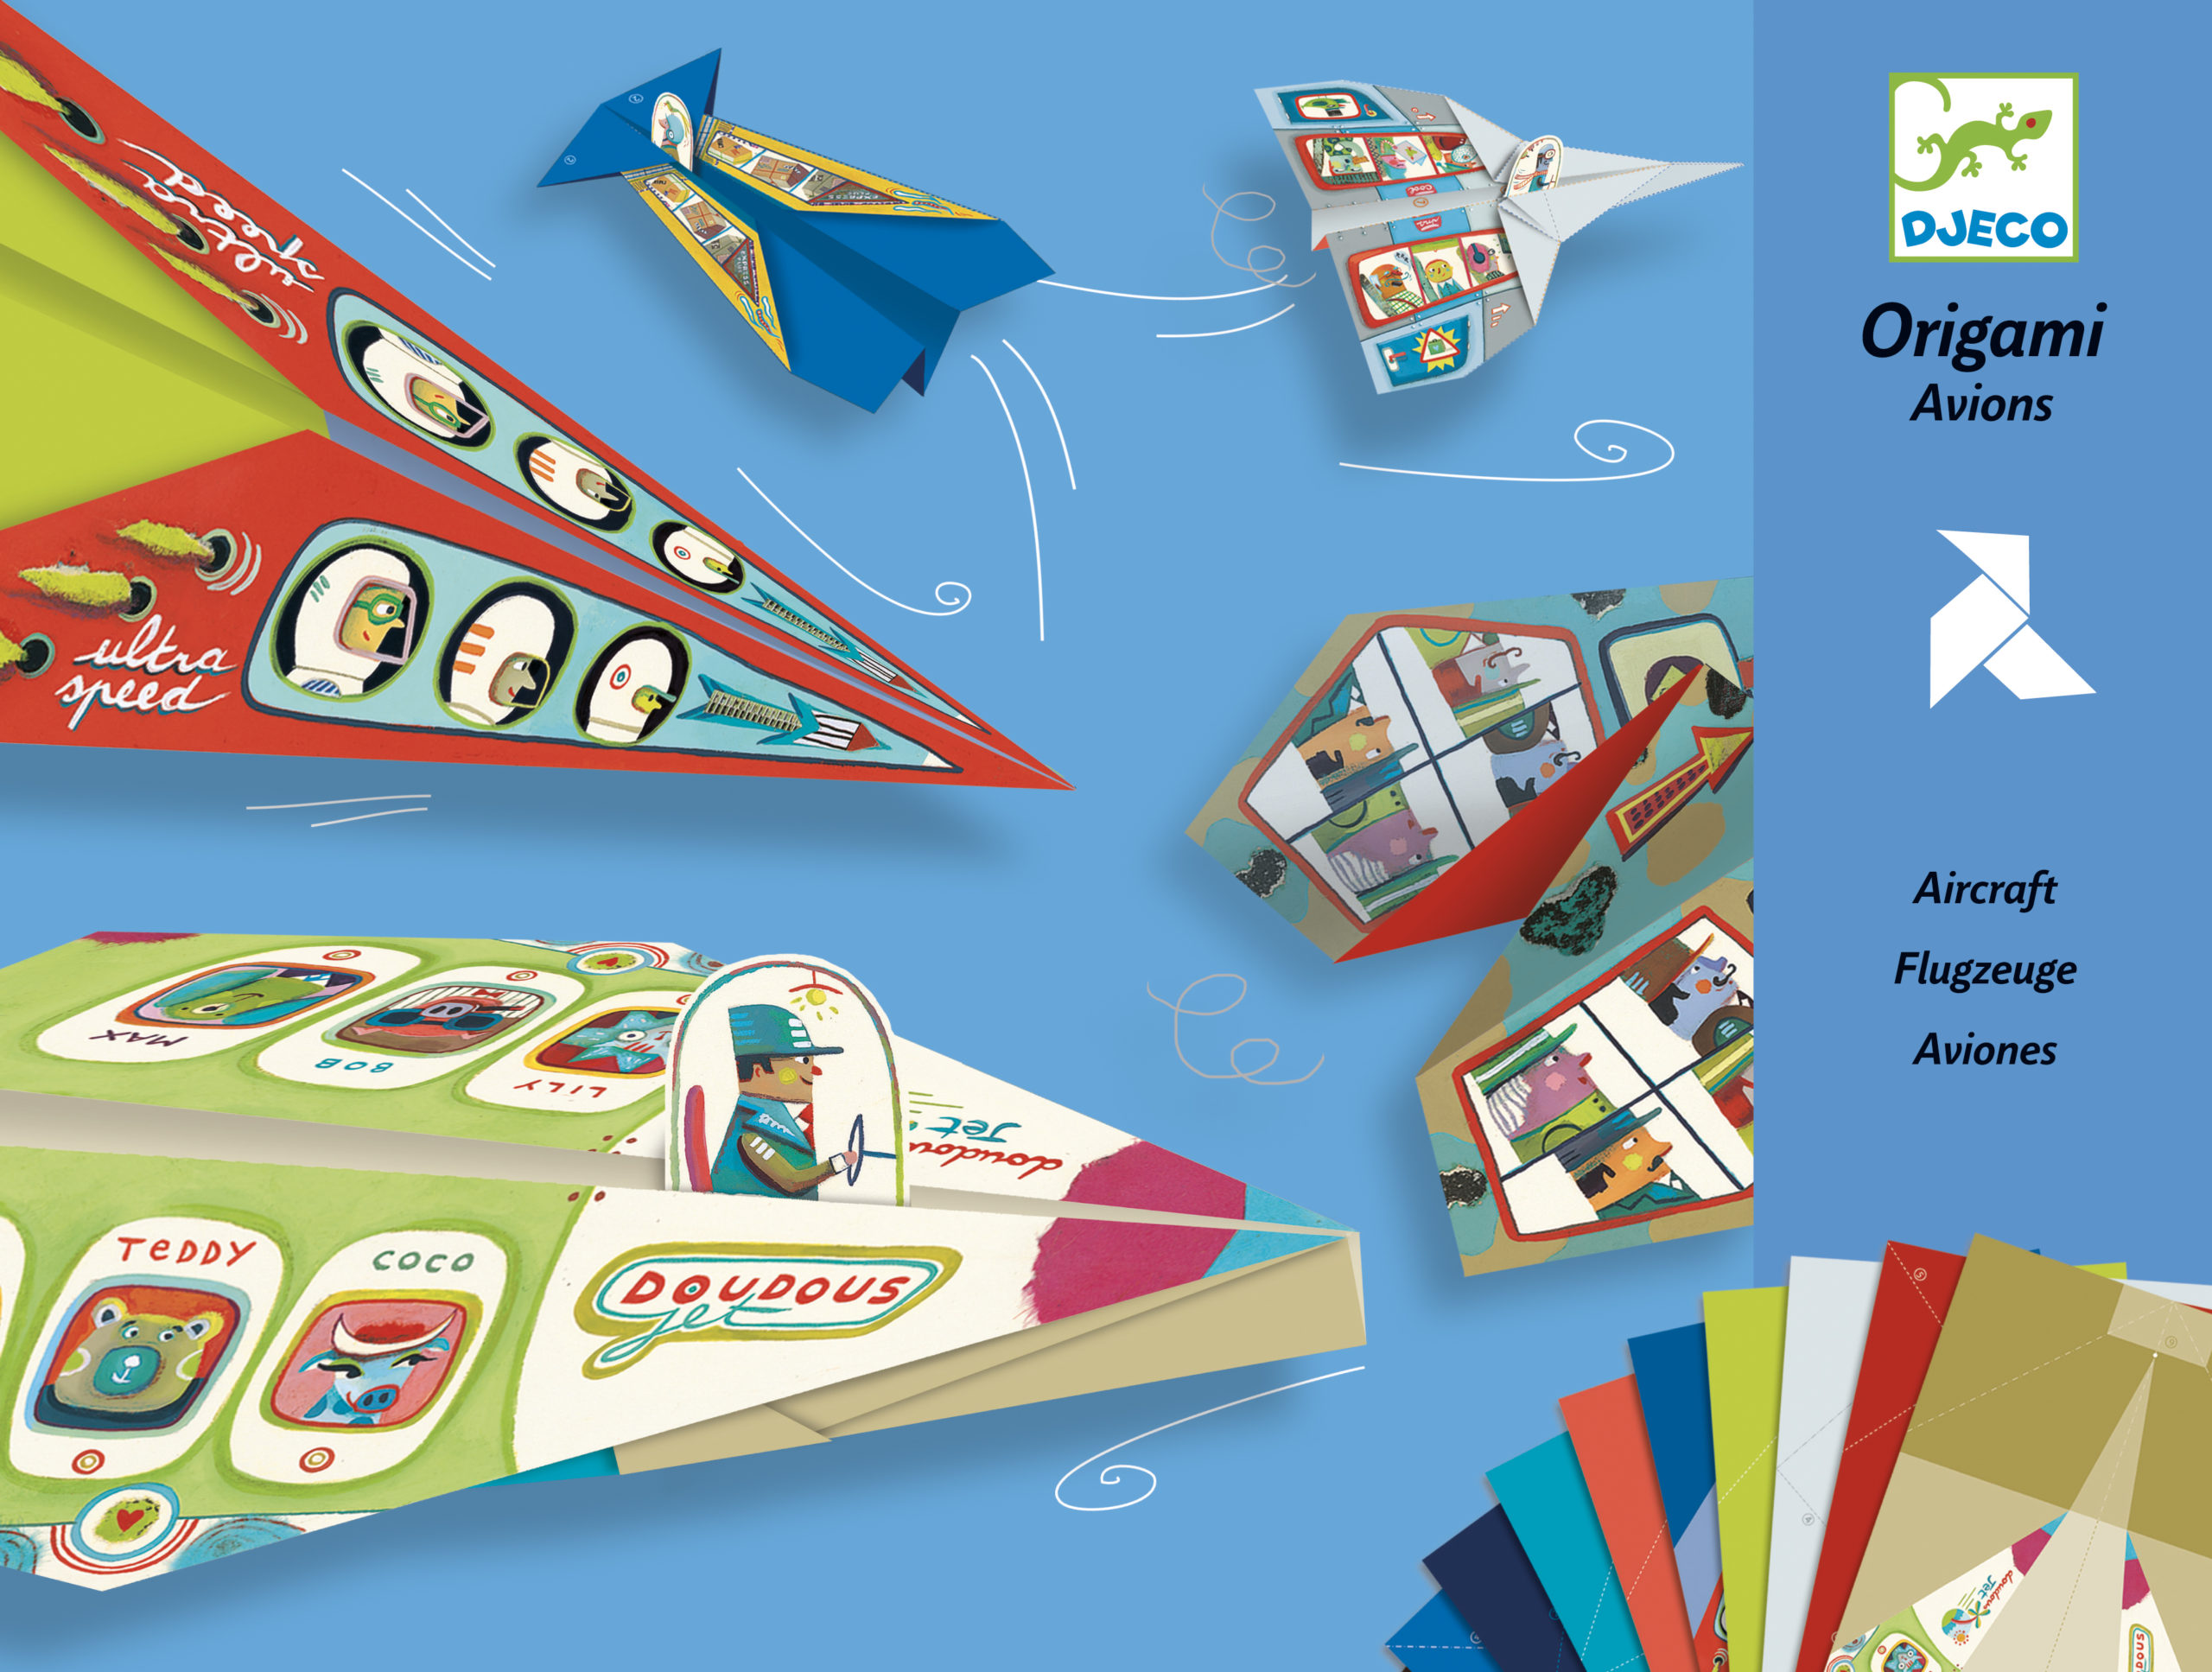 Origami Aircraft from Djeco